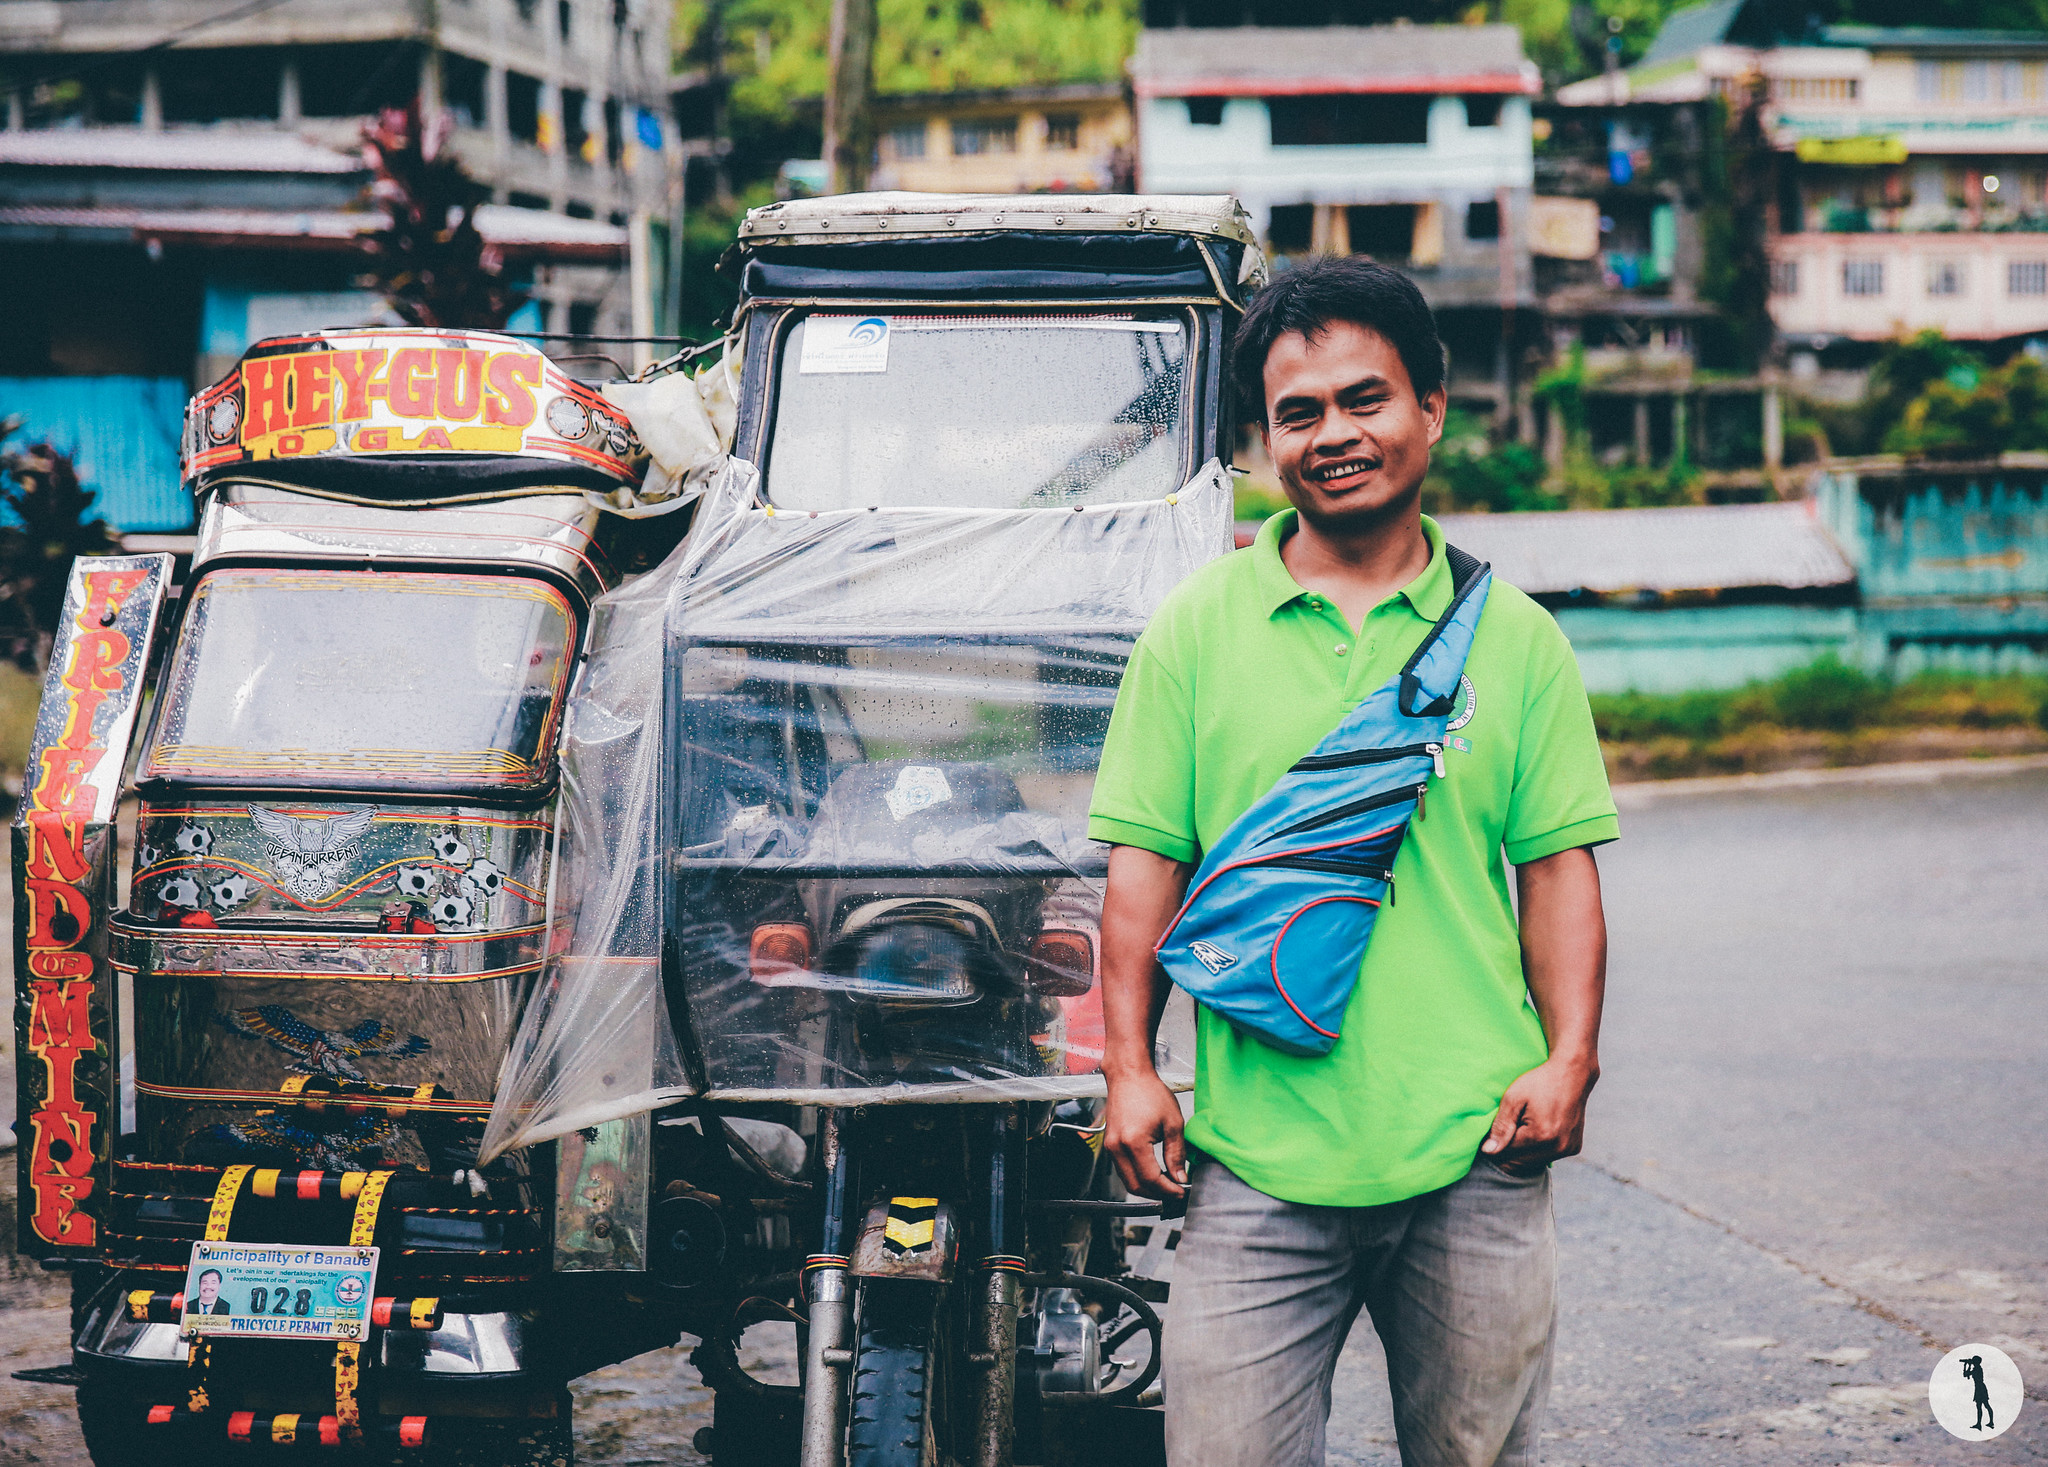 Travel to the Philippines - Banaue. Arnel, tricycle driver